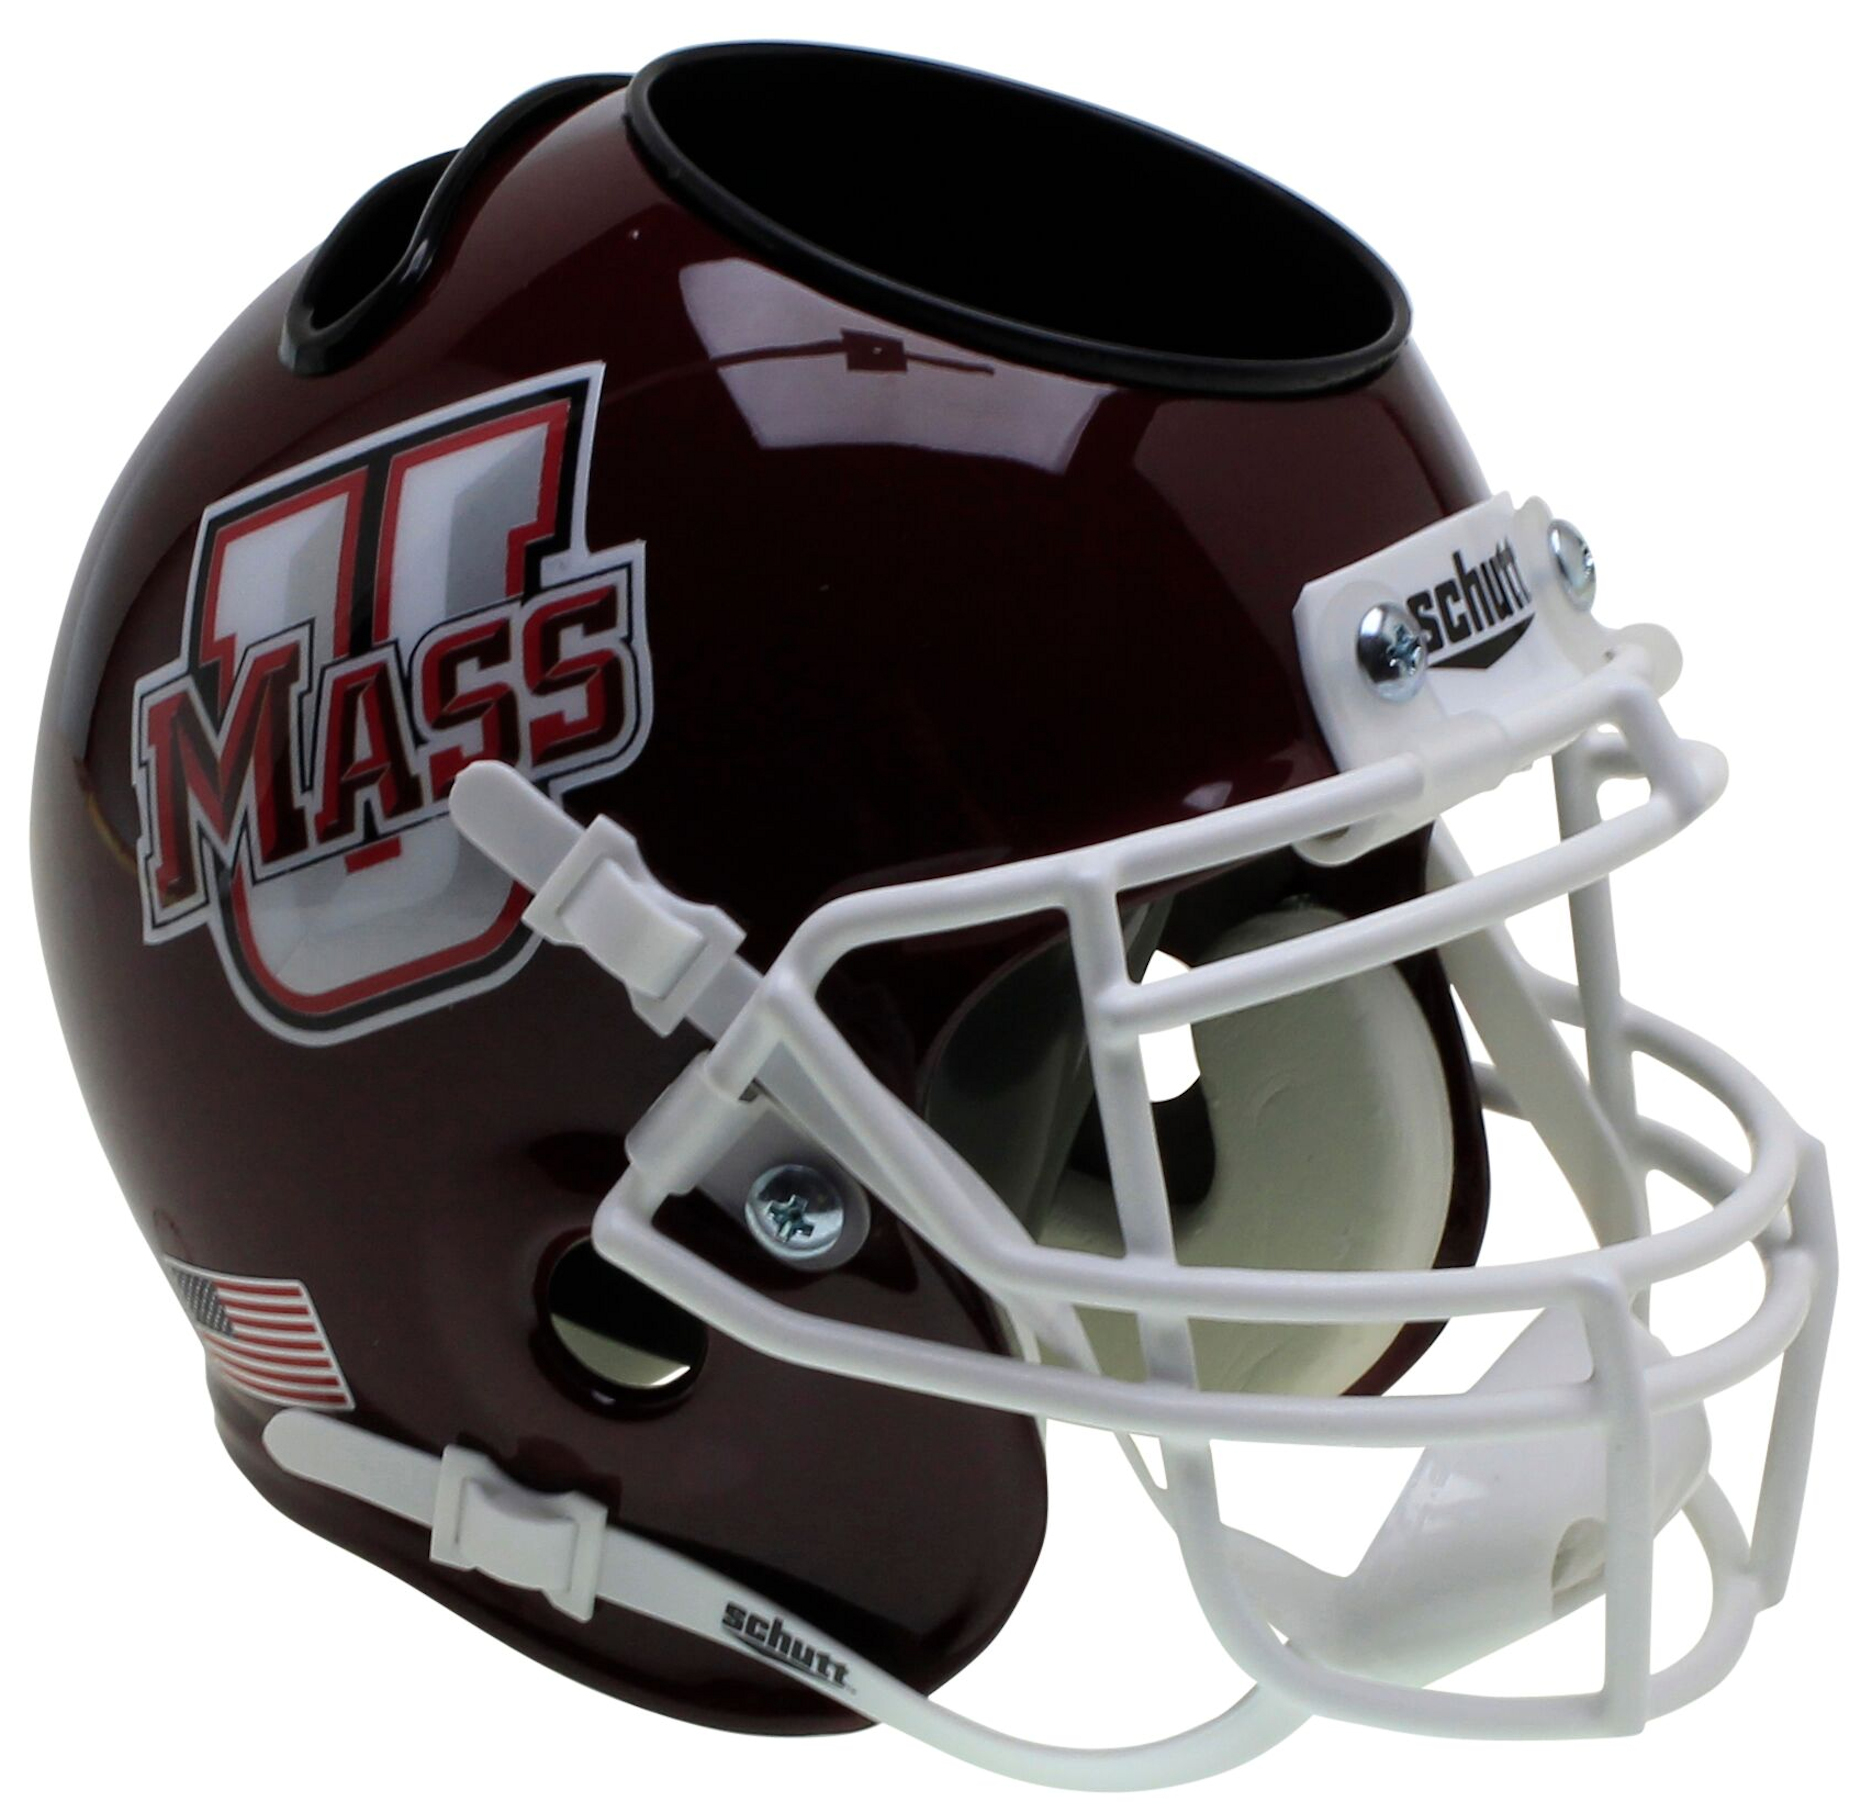 U Mass Minutemen Miniature Football Helmet Desk Caddy <B>Stripe</B>